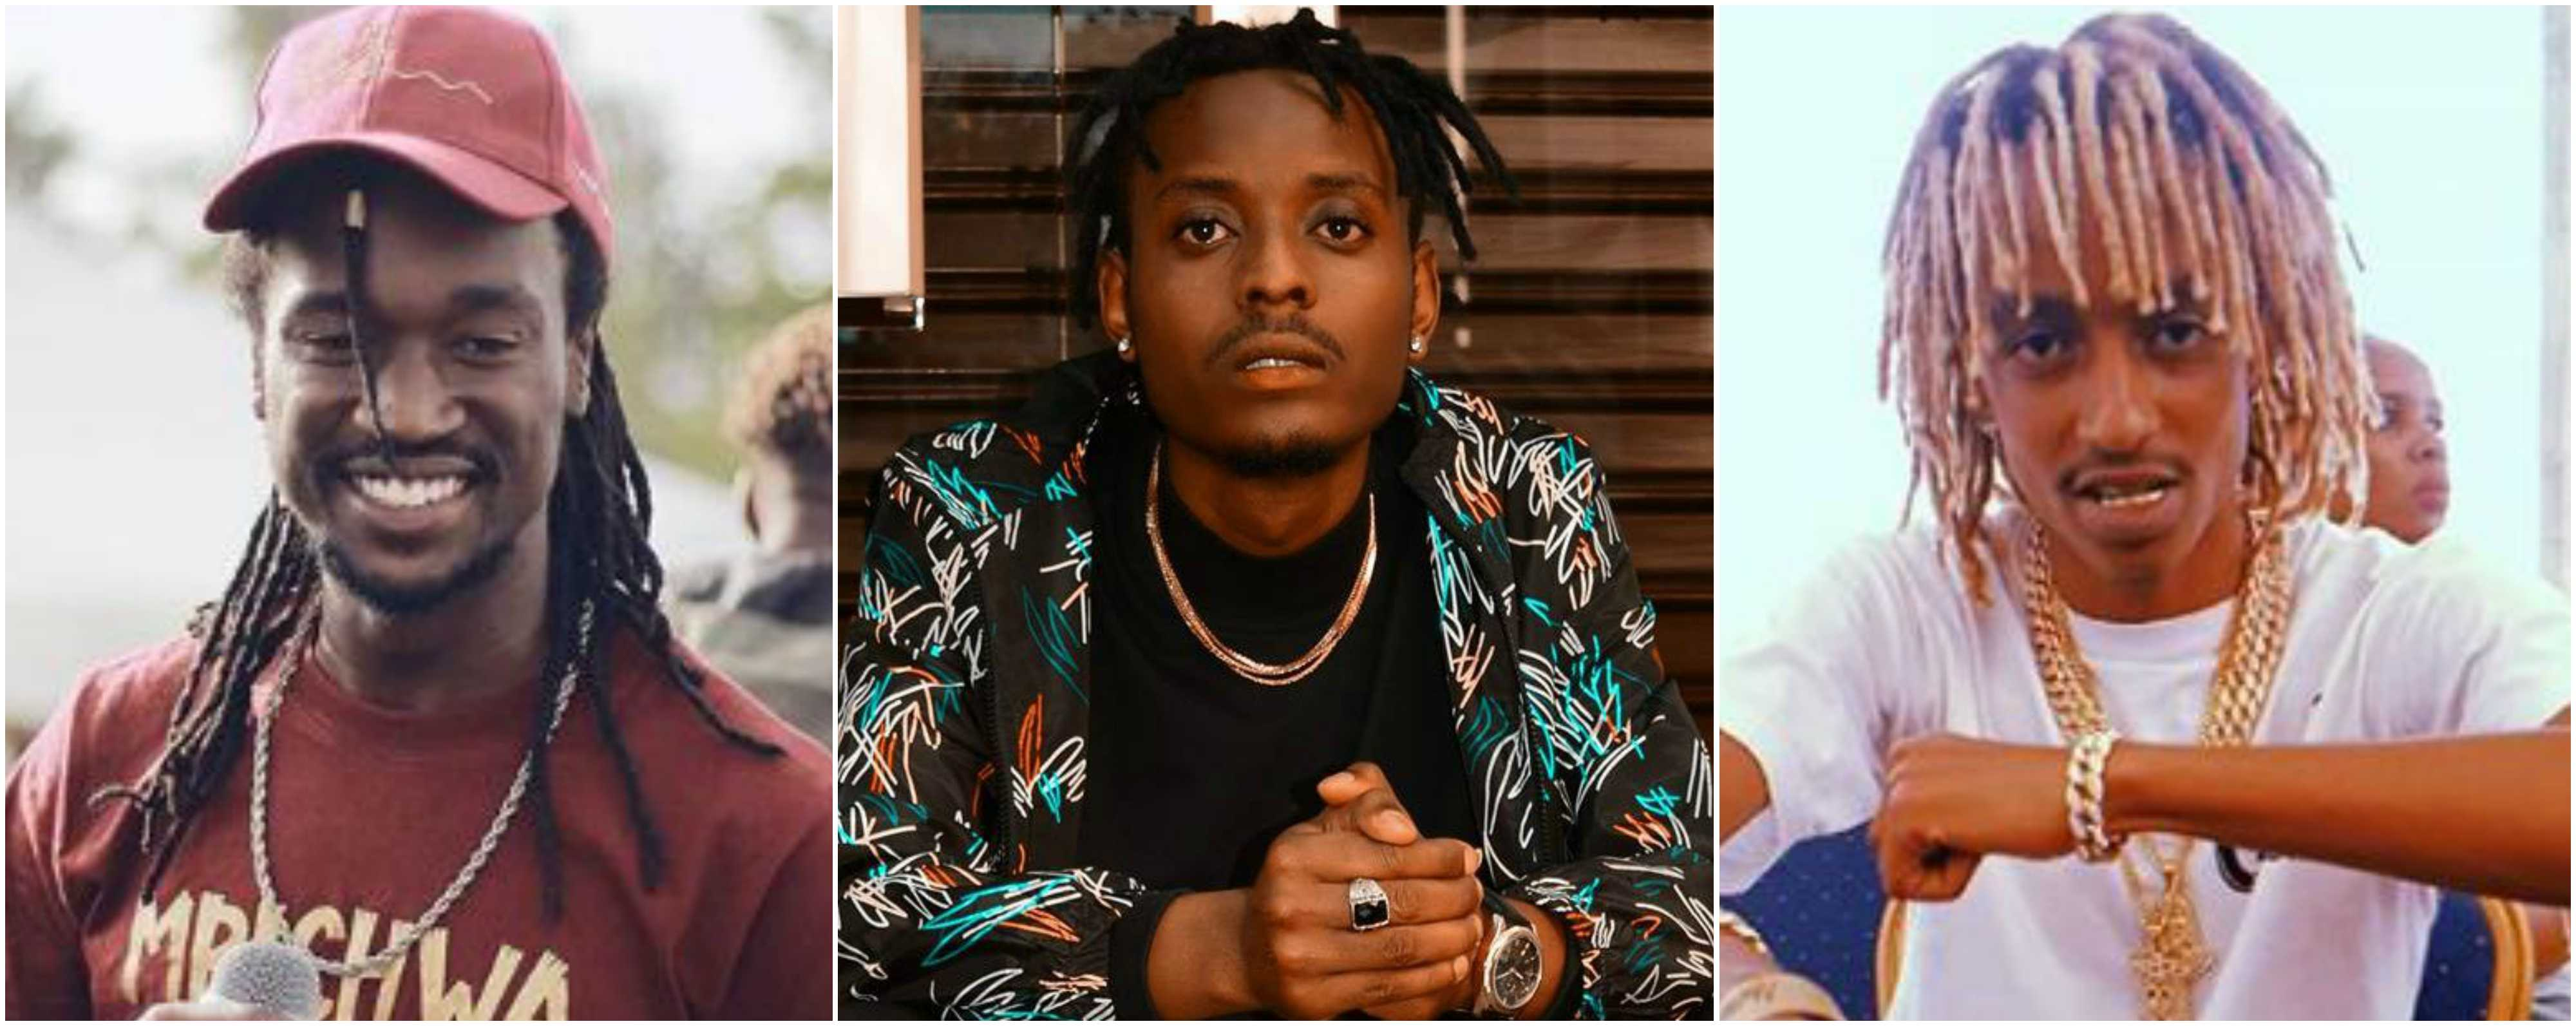 Ochunglo Family's Benzema has teamed up with Raj and Boutross on 'Chorea' and it's a big tune (Video)